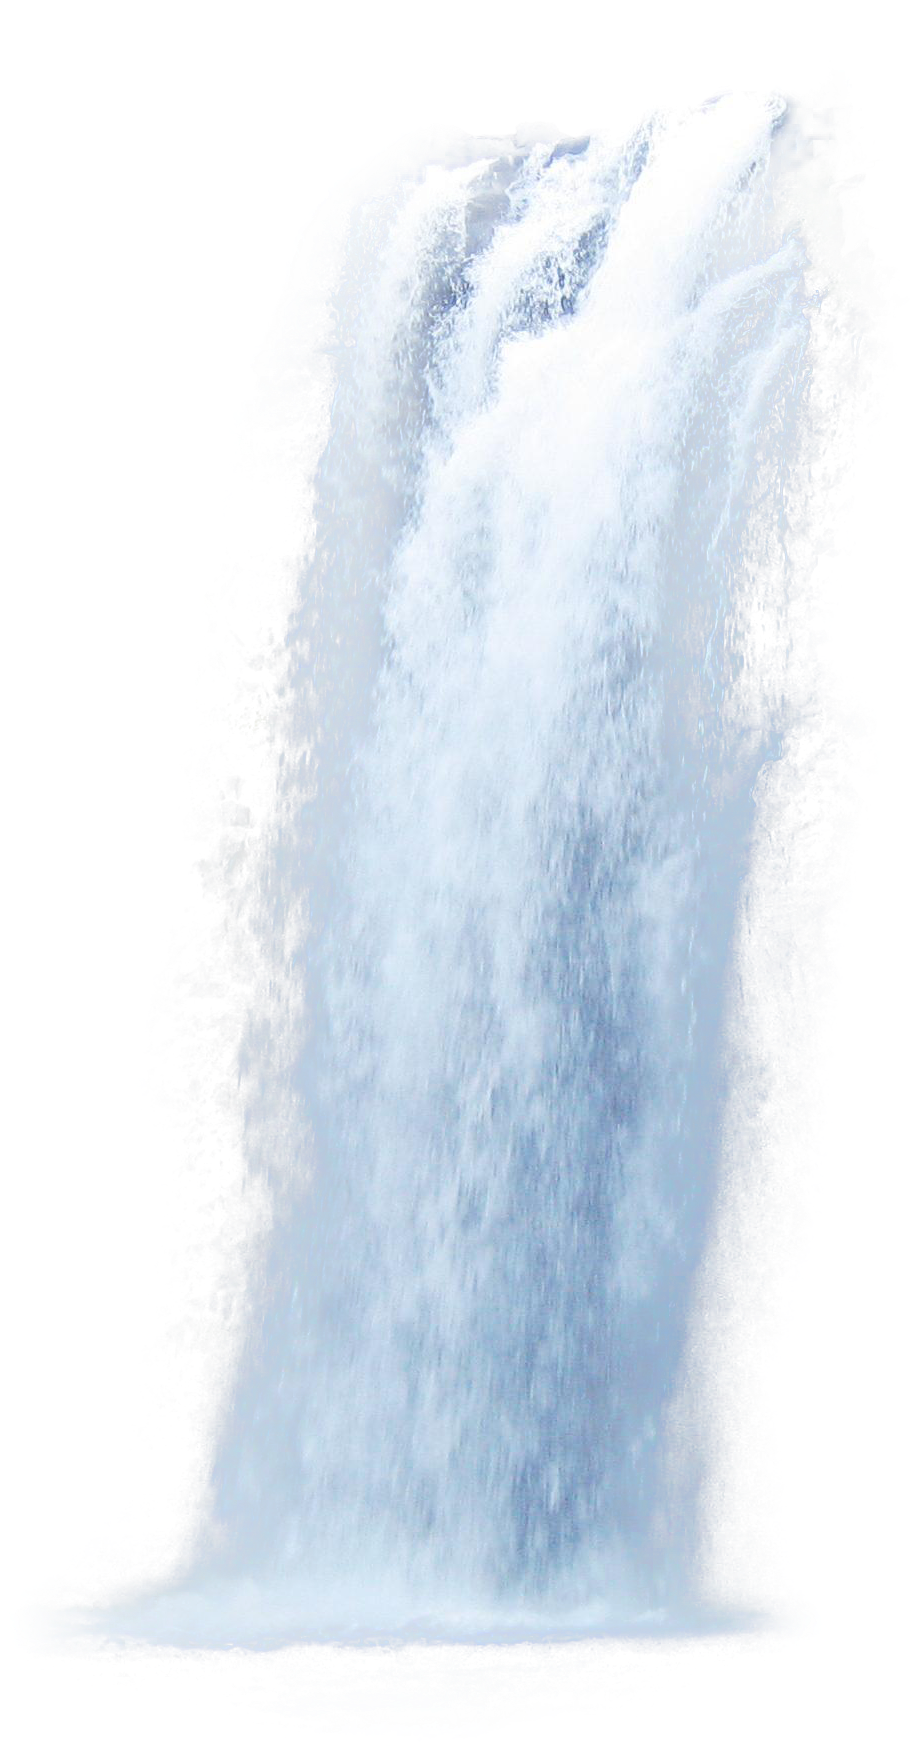 Water stream png. Waterfall hd transparent images